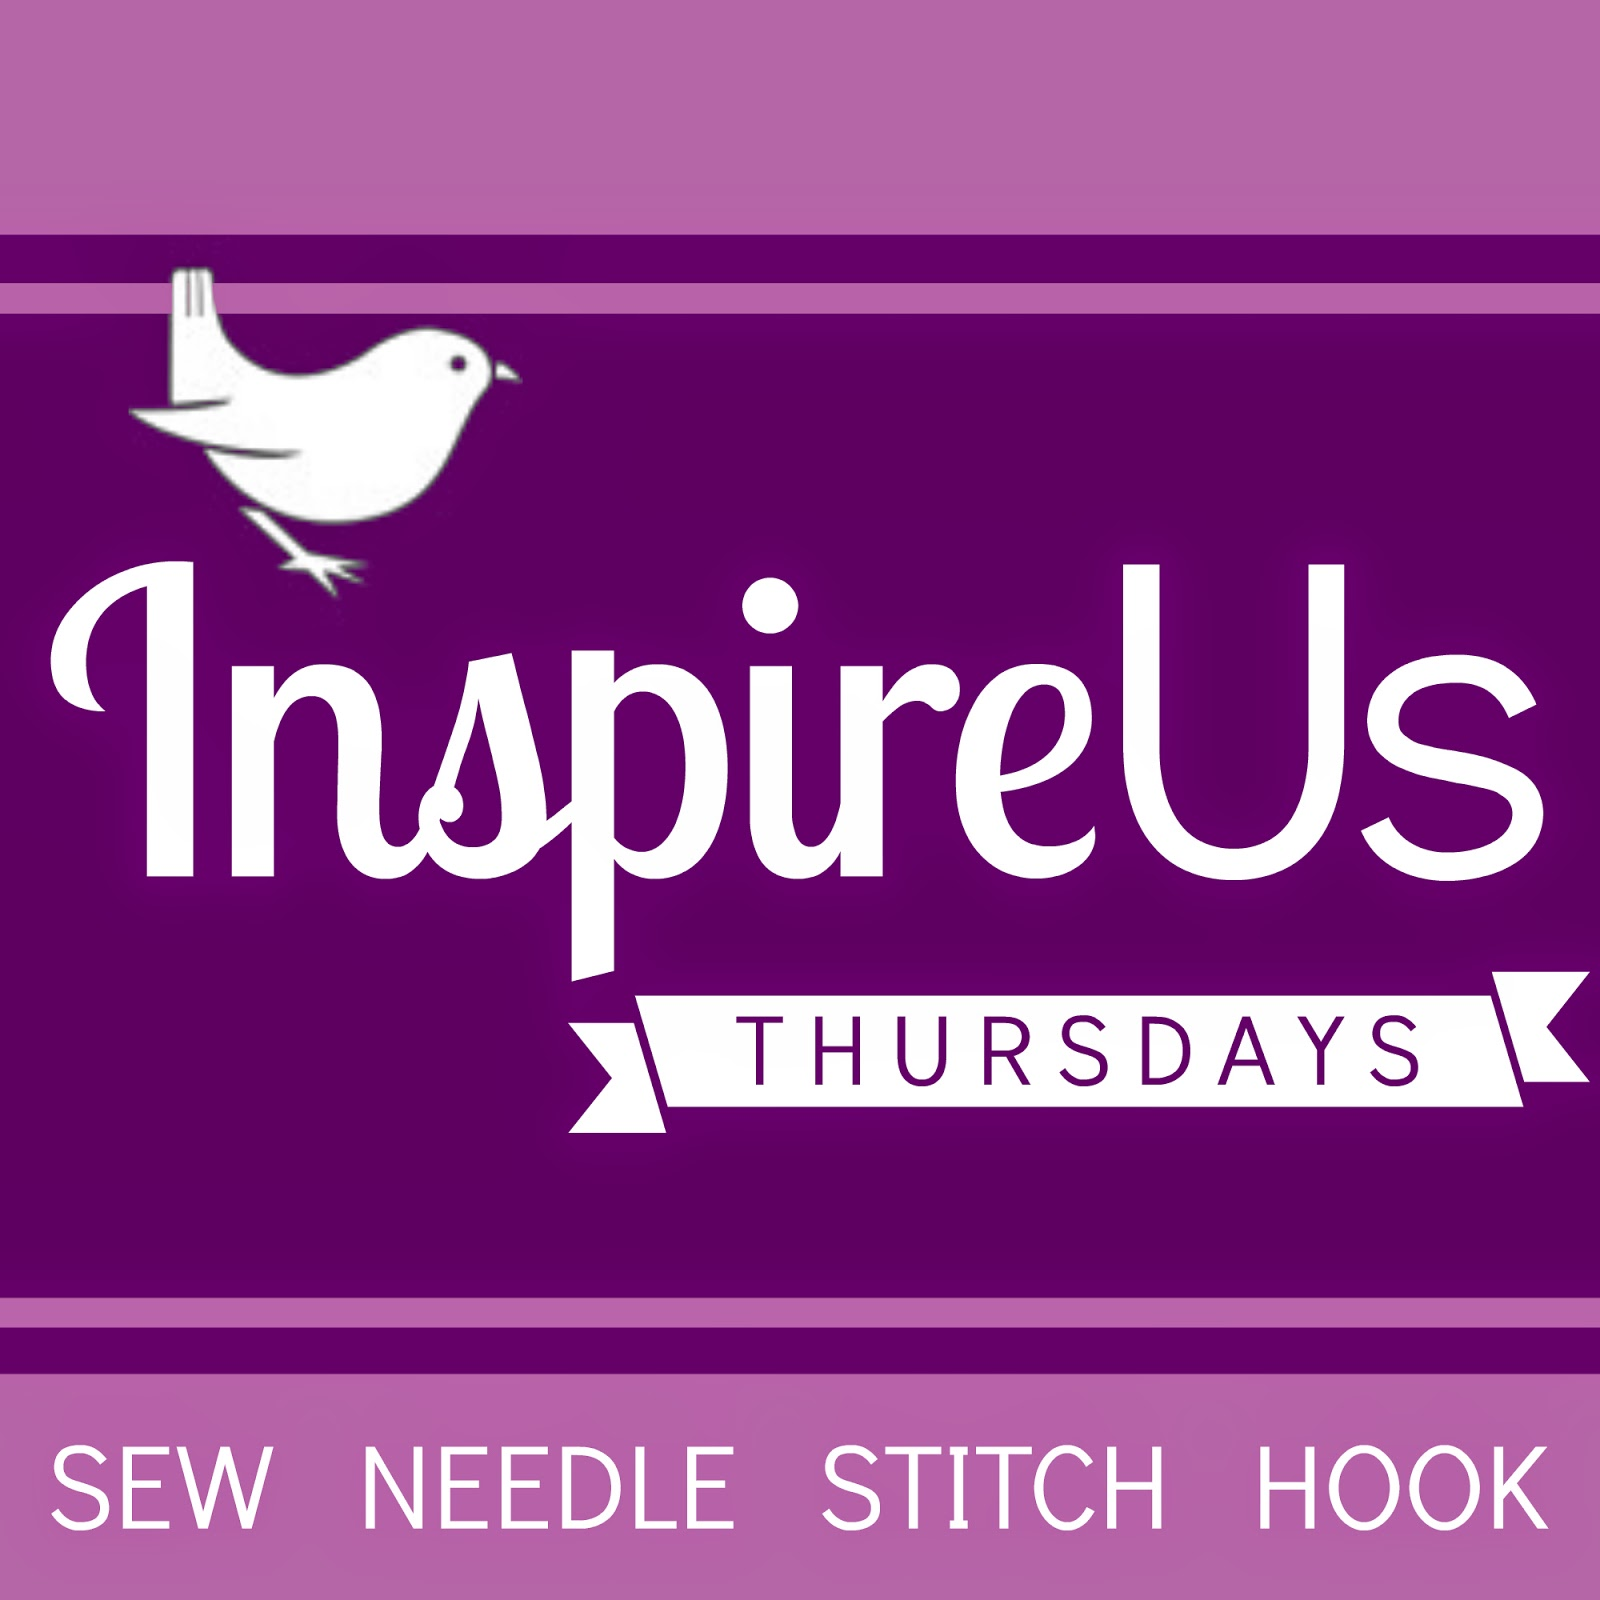 Inspire Us Thursdays: Sew Needle Stitch Hook. Join us for a weekly Link Party of sewing, knitting, cross-stitch, and crochet; of fabric, yarn, and embroidery floss; all on The Inspired Wren.